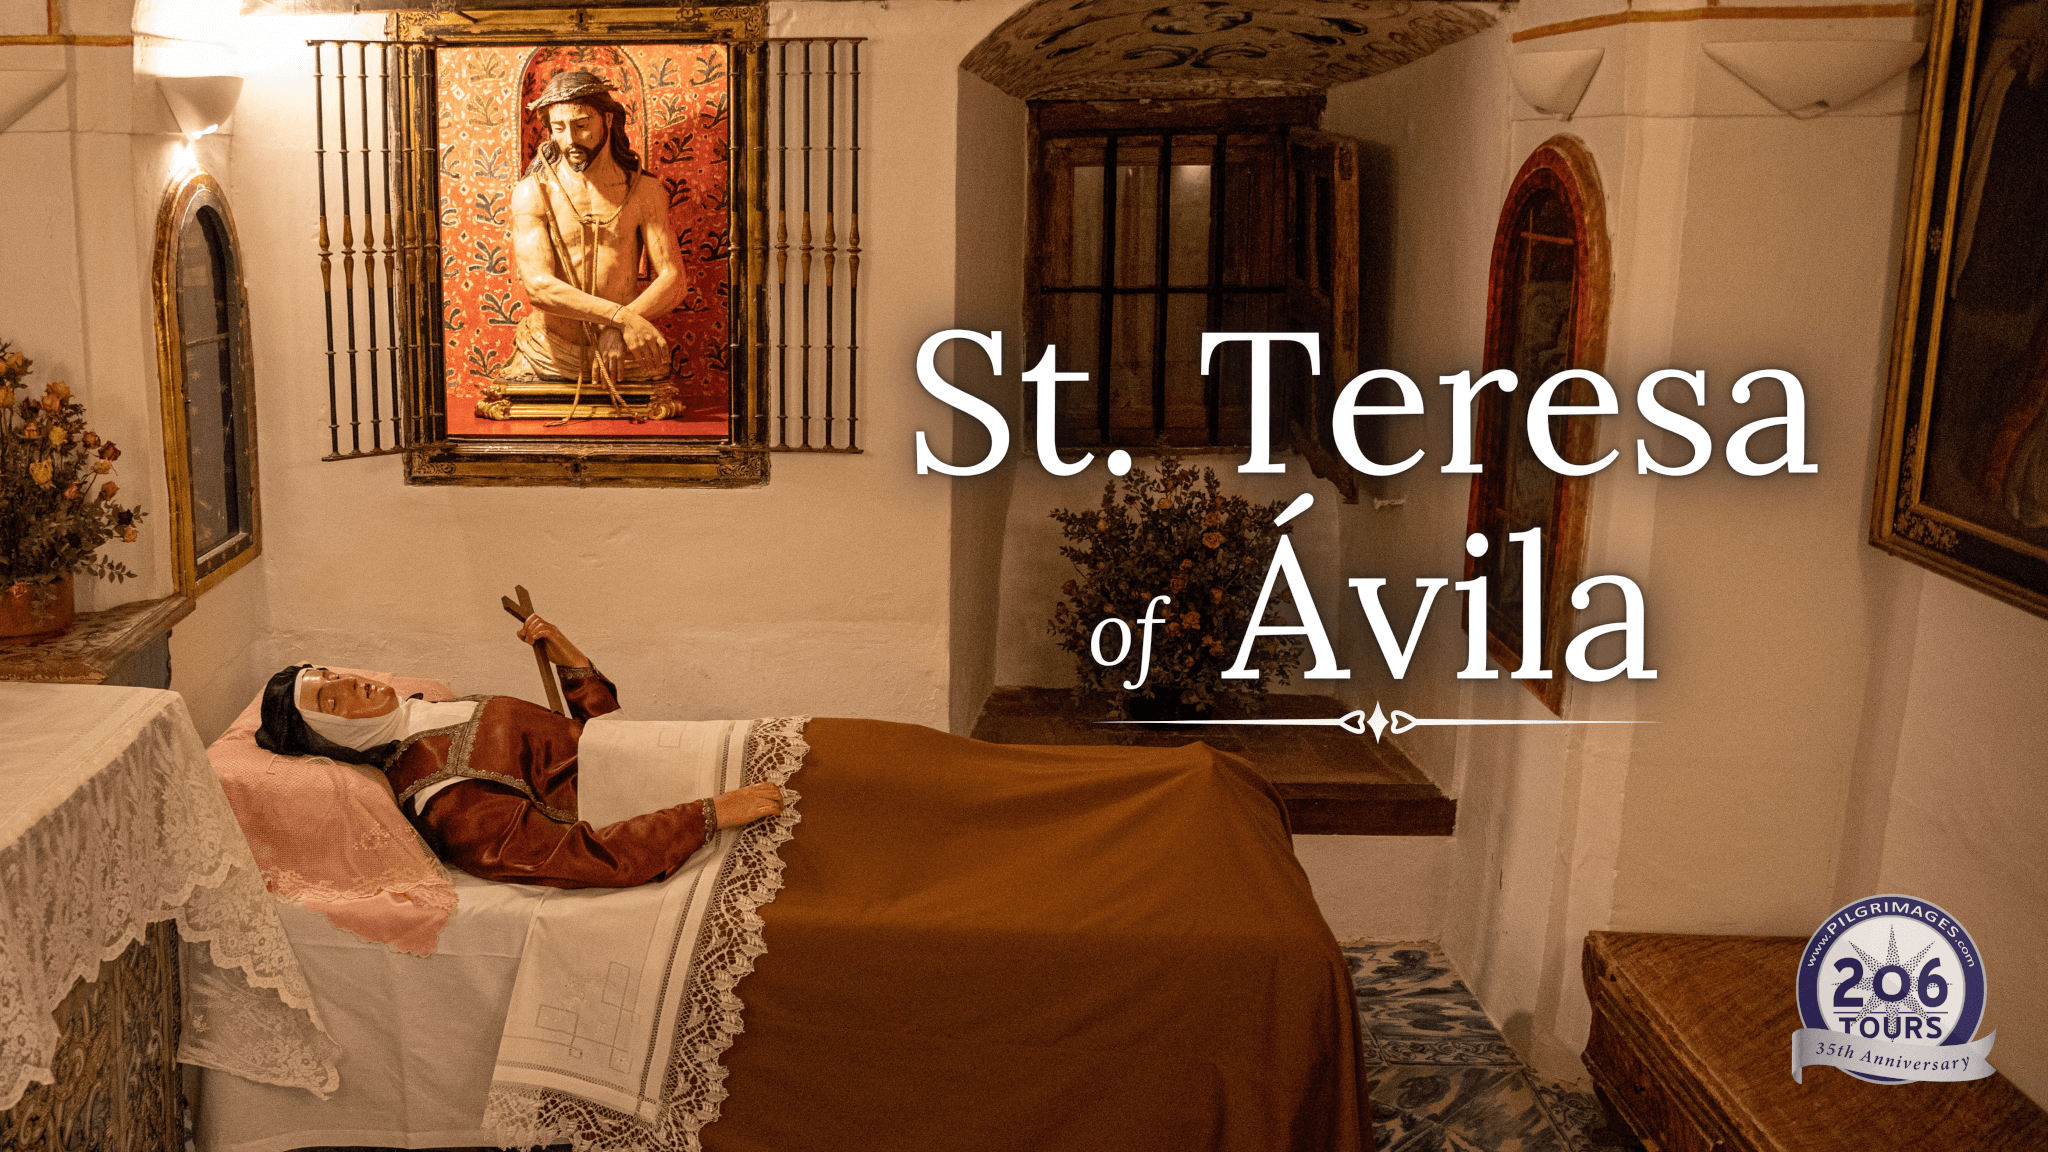 St. Teresa of Ávila 206 Tours